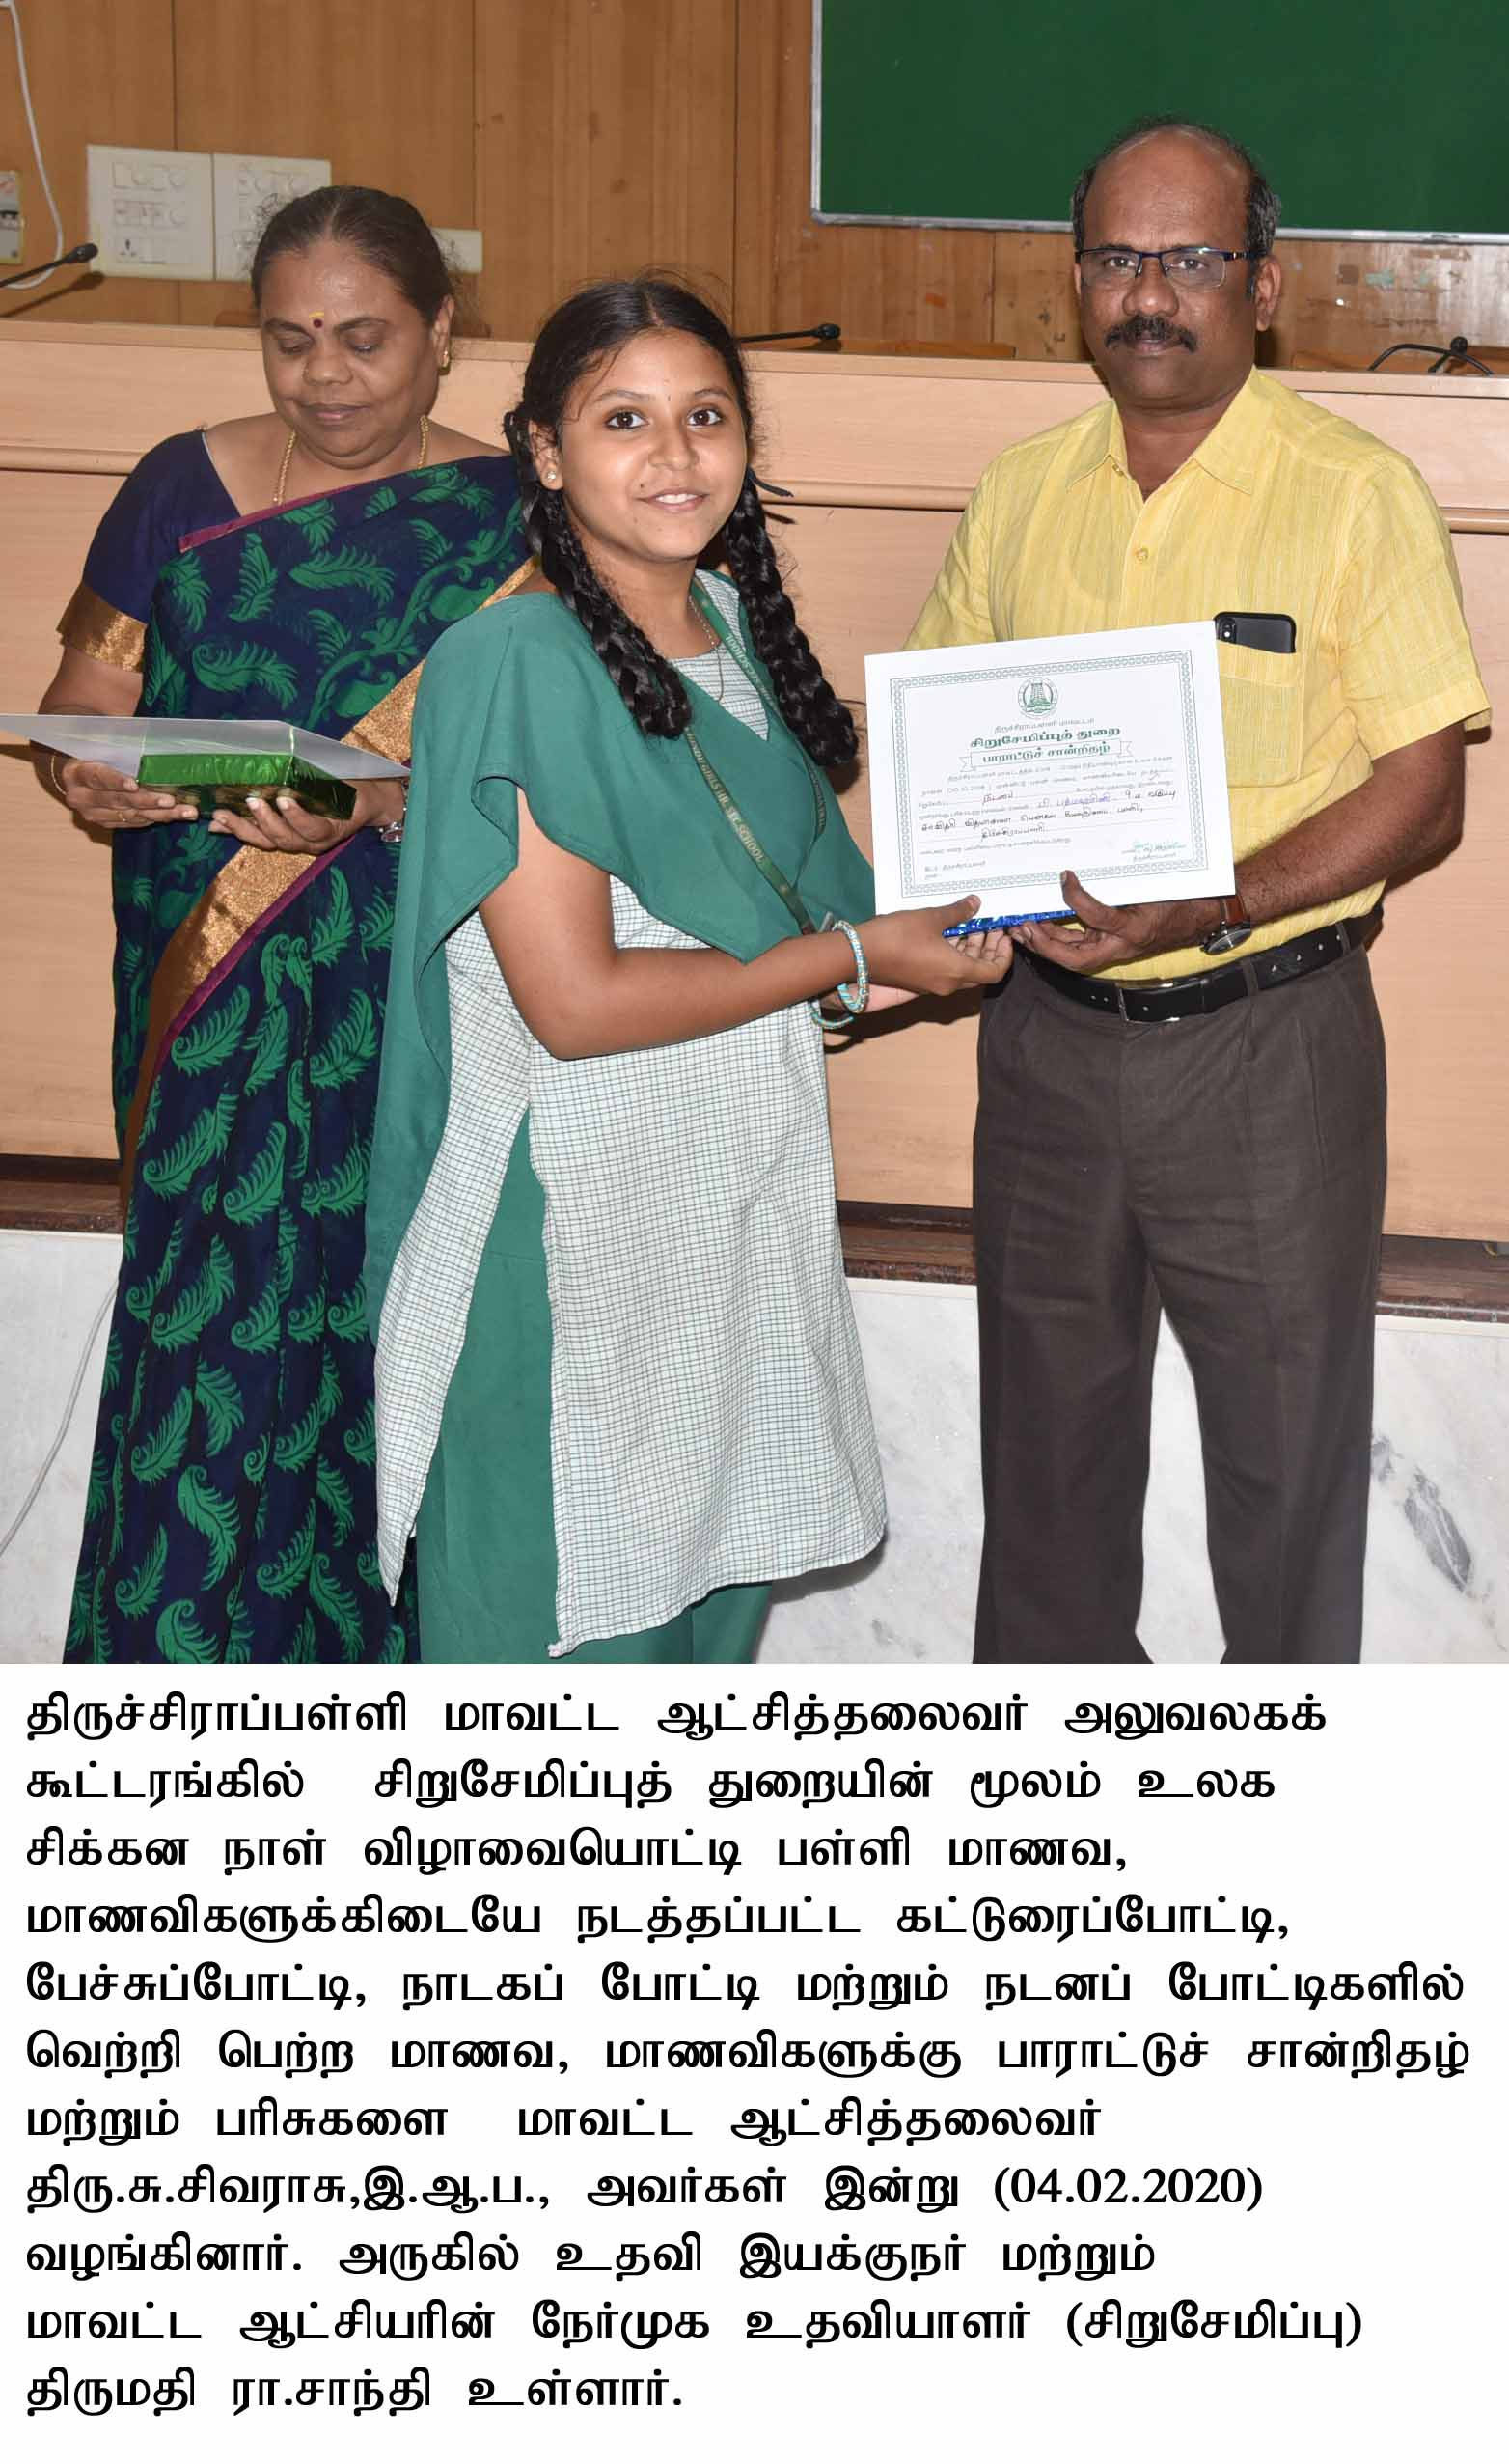 The District Collector presented a commendation testimony to the students who won the World Thrift Day 2019 competition